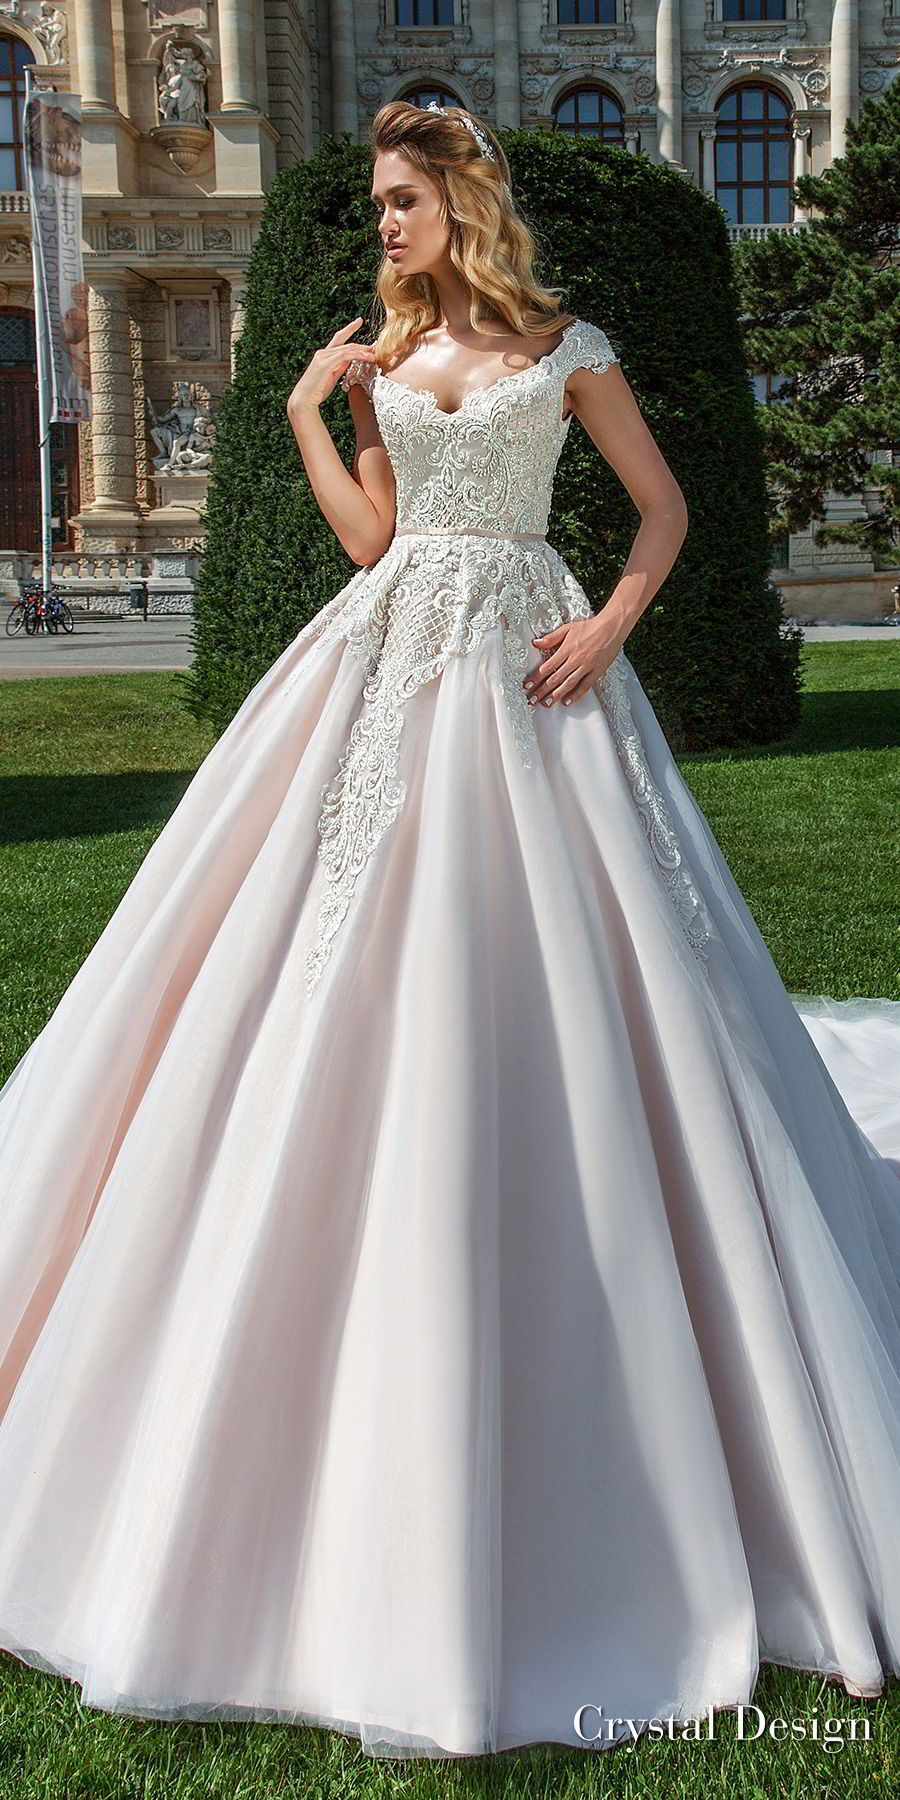 Wedding dresses v neck  crystal design  cap sleeves v neck heavily embellished bodice